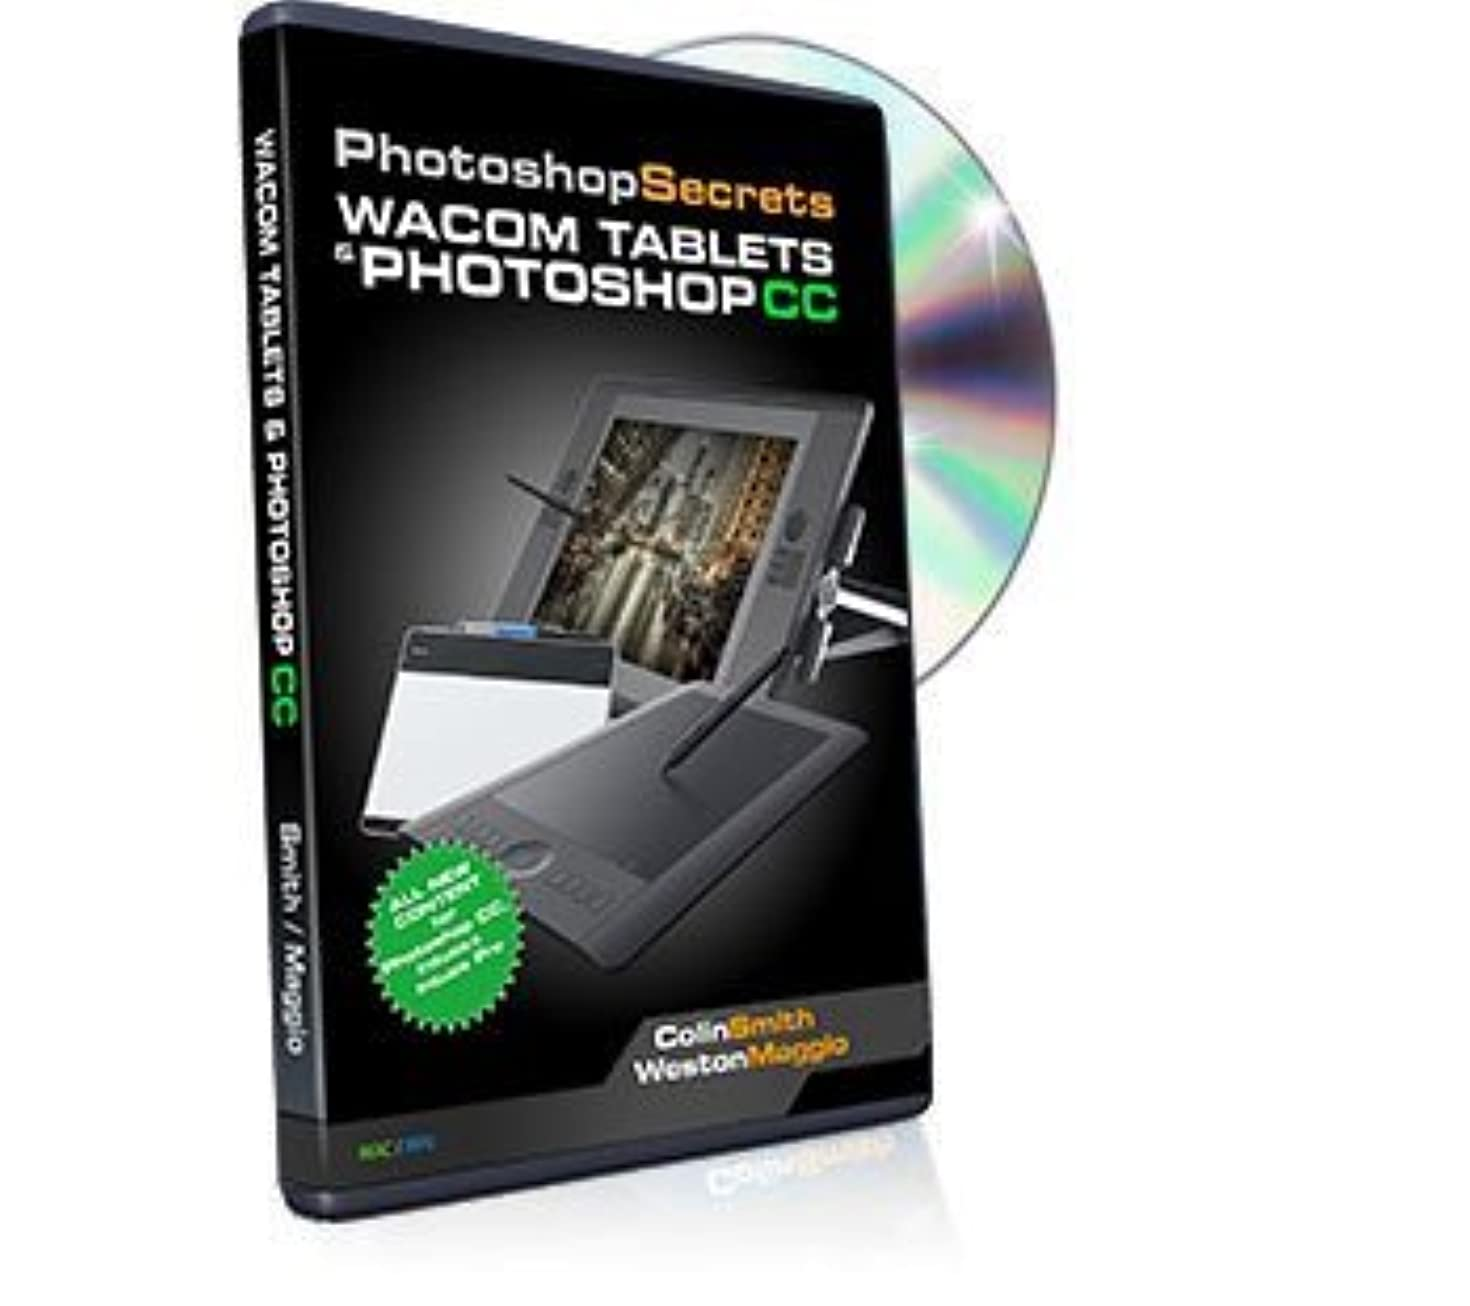 Learning Wacom Tablets and Photoshop CC Tutorial DVD - The best Training Video to Learn your Tablet & Photoshop CC by Colin Smith & Weston Maggio